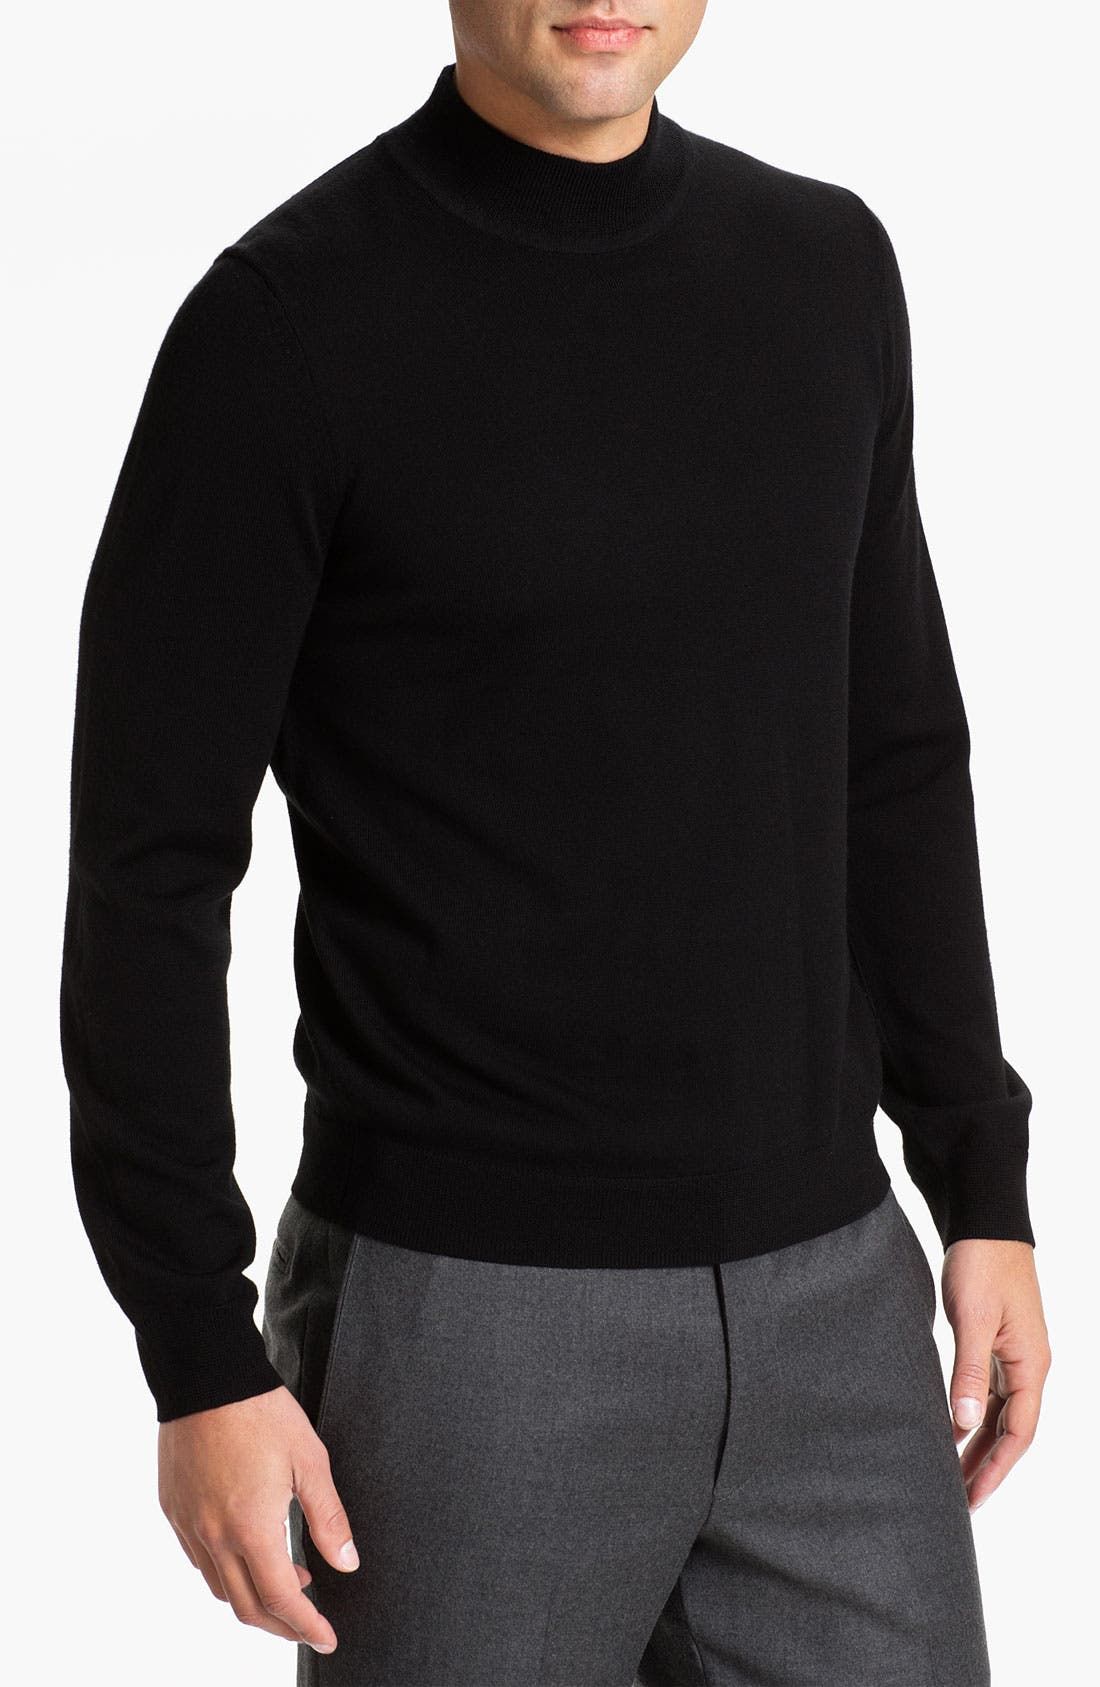 Alternate Image 1 Selected - Nordstrom Mock Neck Merino Wool Sweater